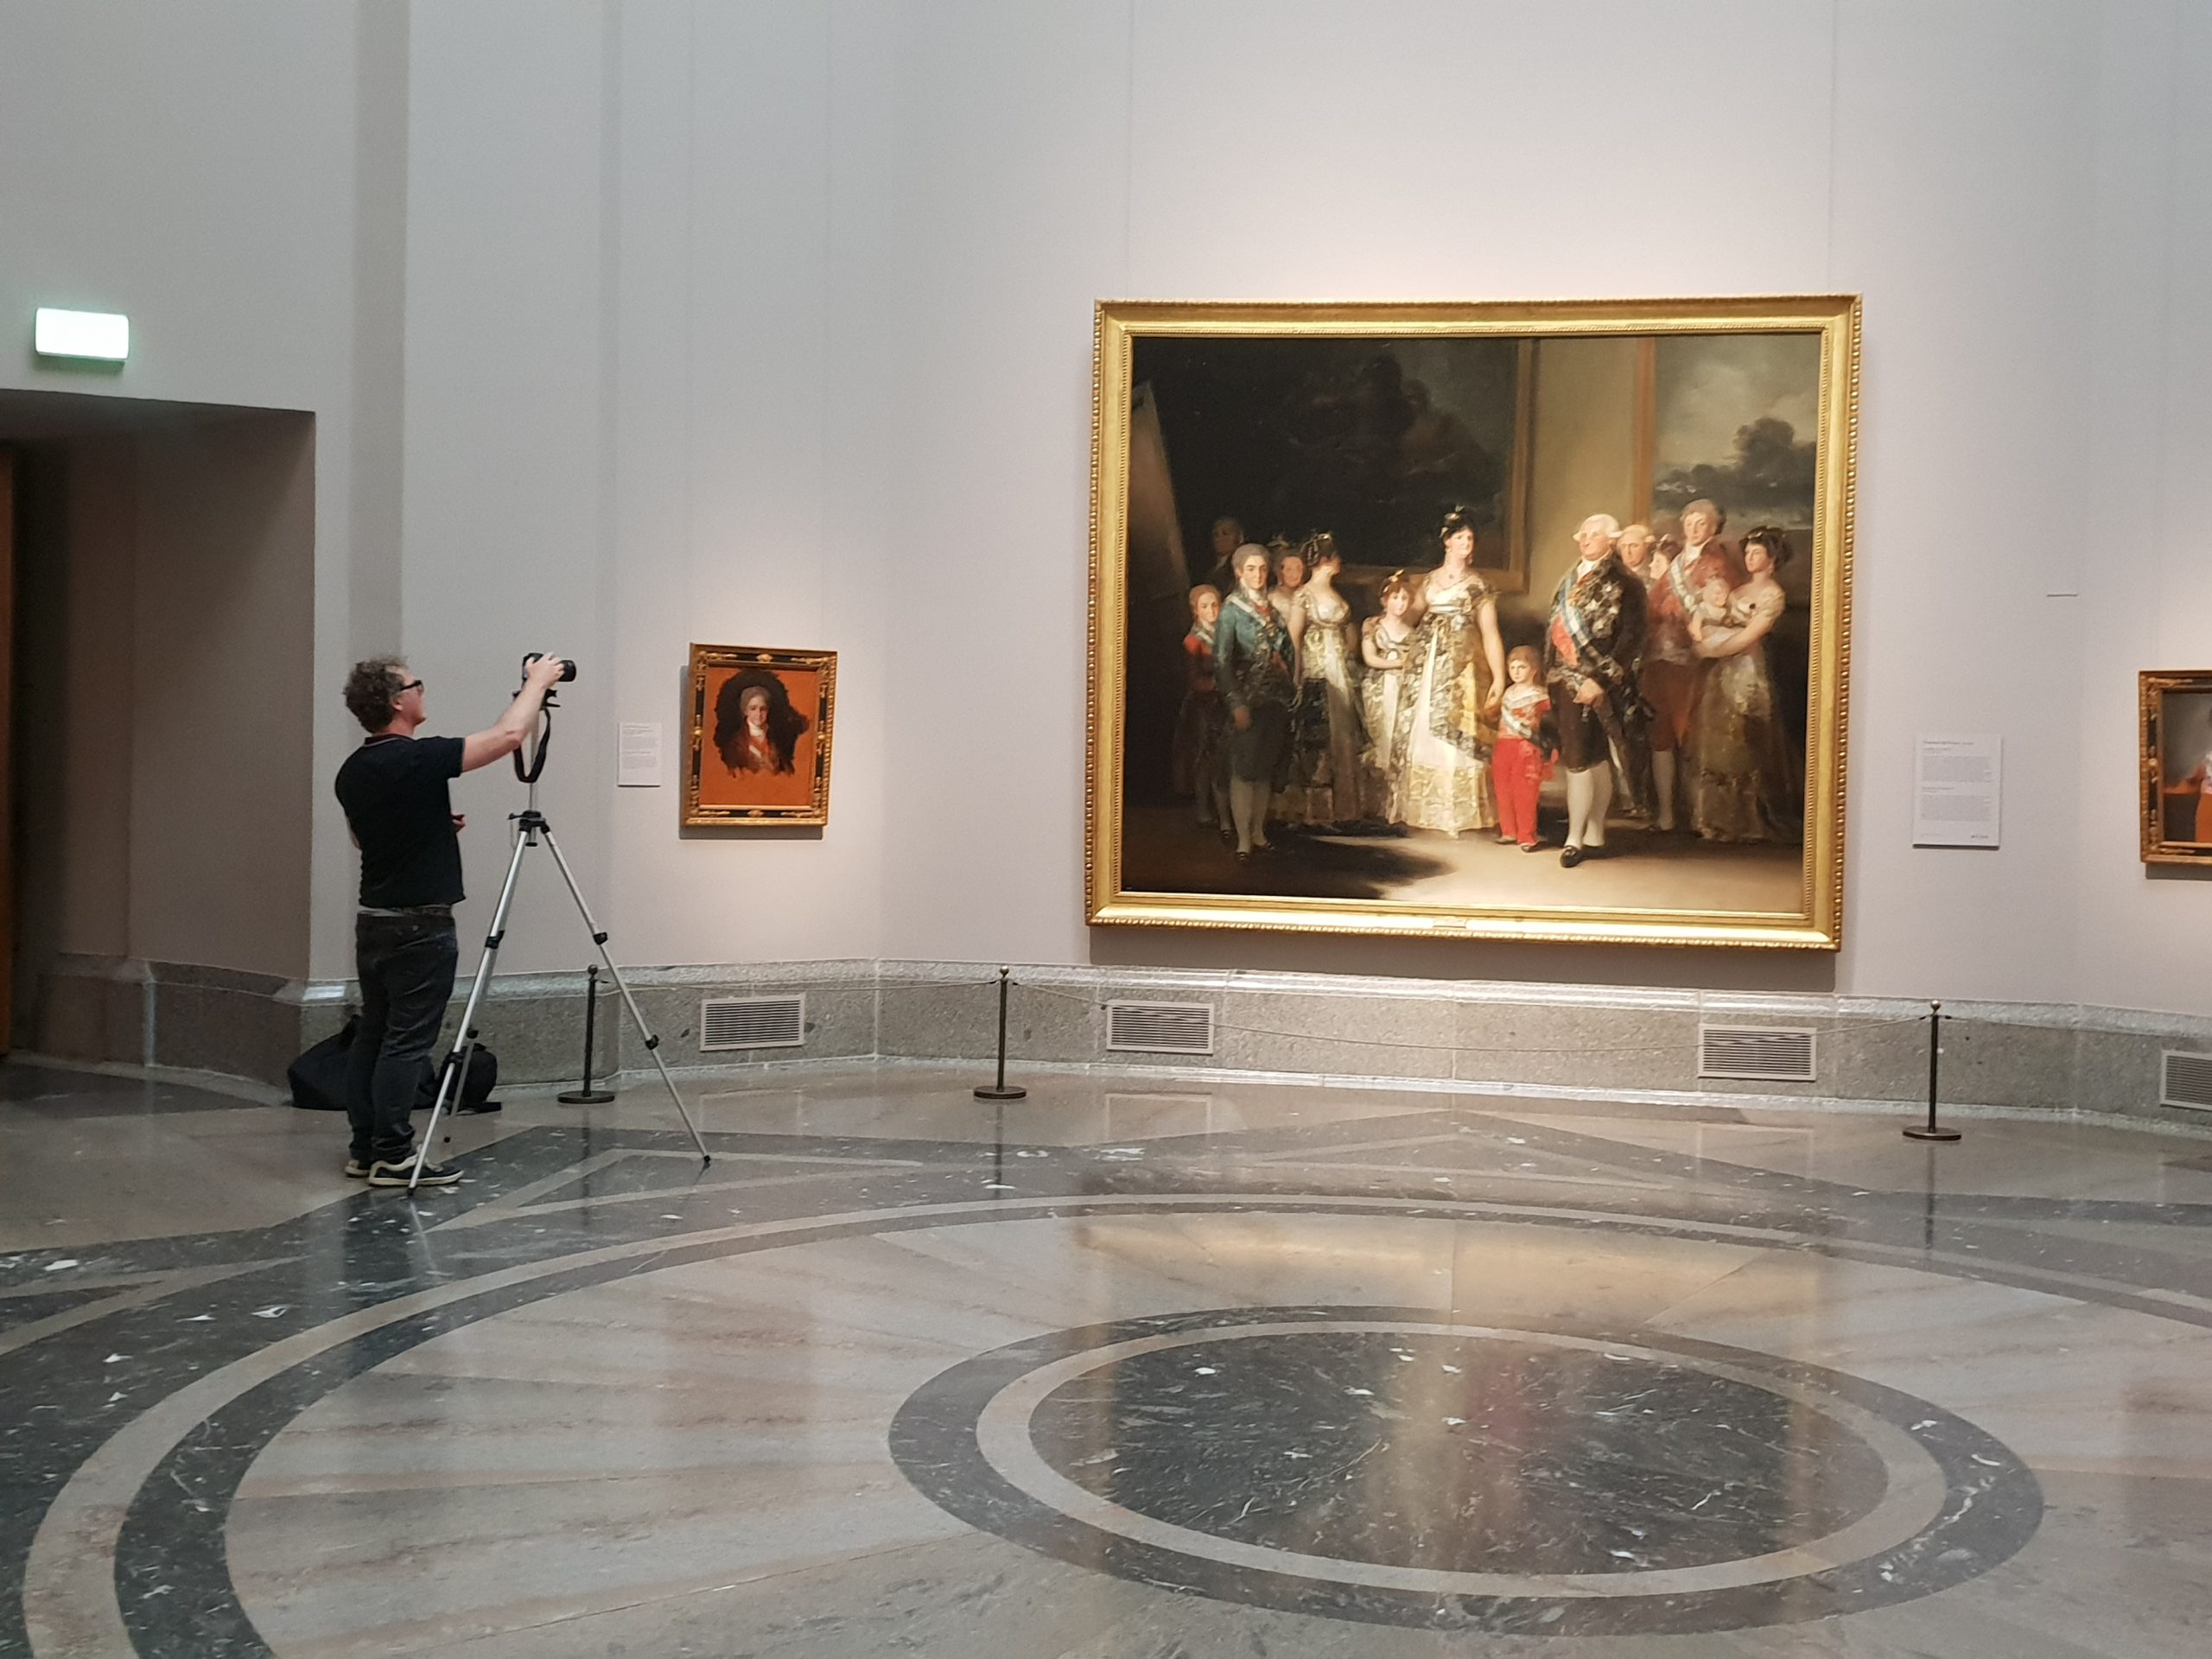 Christian Furr Photographing in th Prado, Madrid